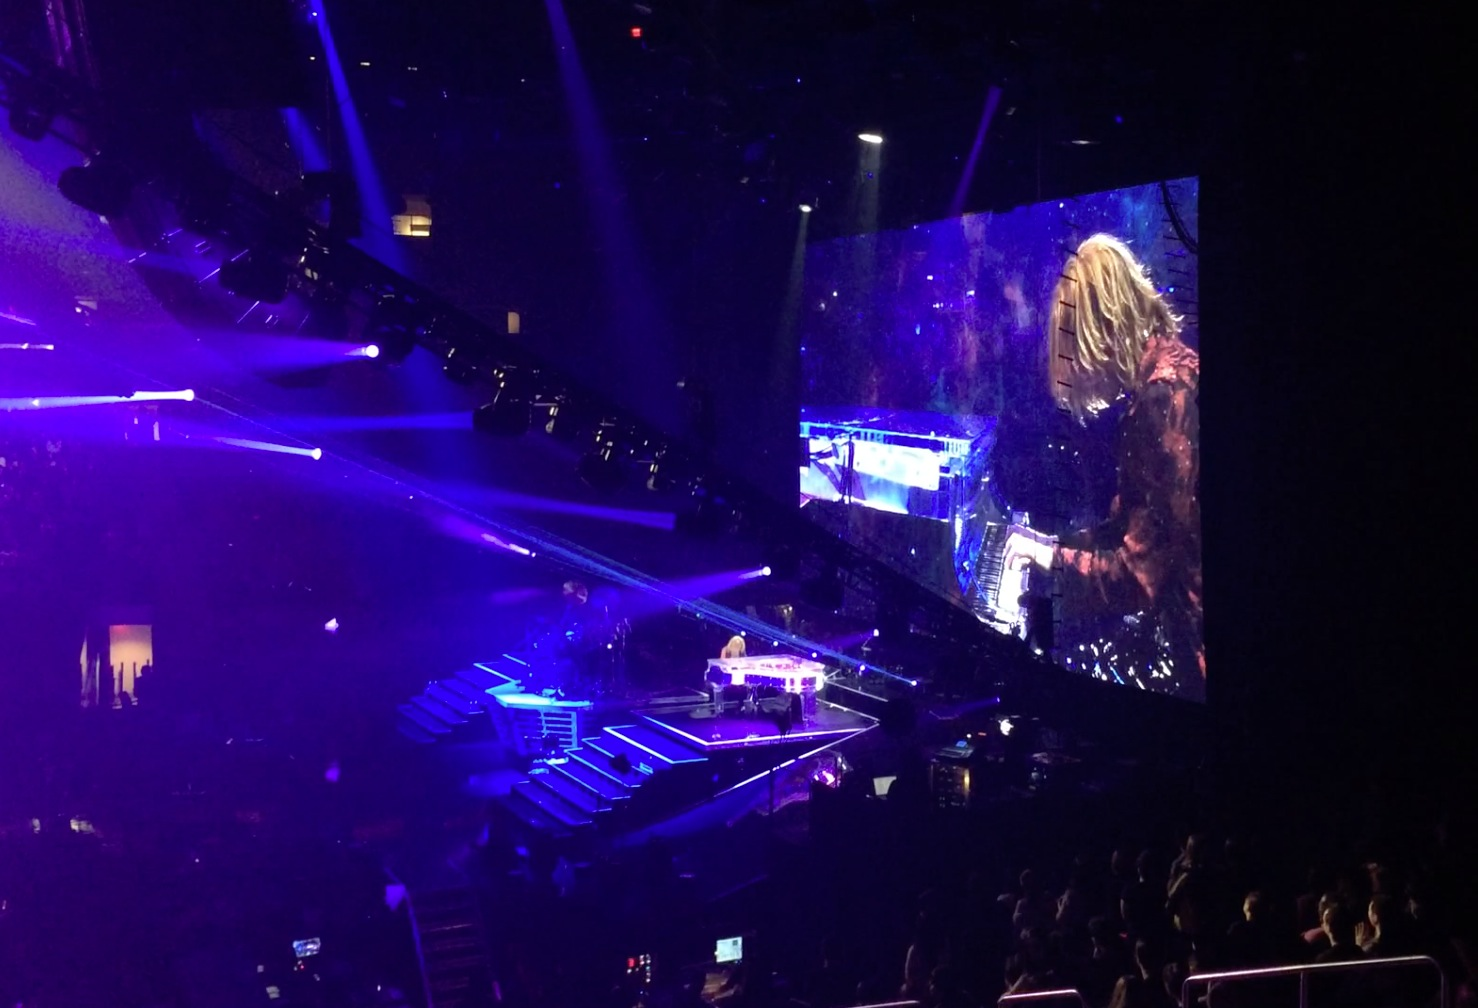 Yoshiki playing his signature custom Kawai Yoshiki transparent grand piano.  He even played the Star Spangled Banner at one point!